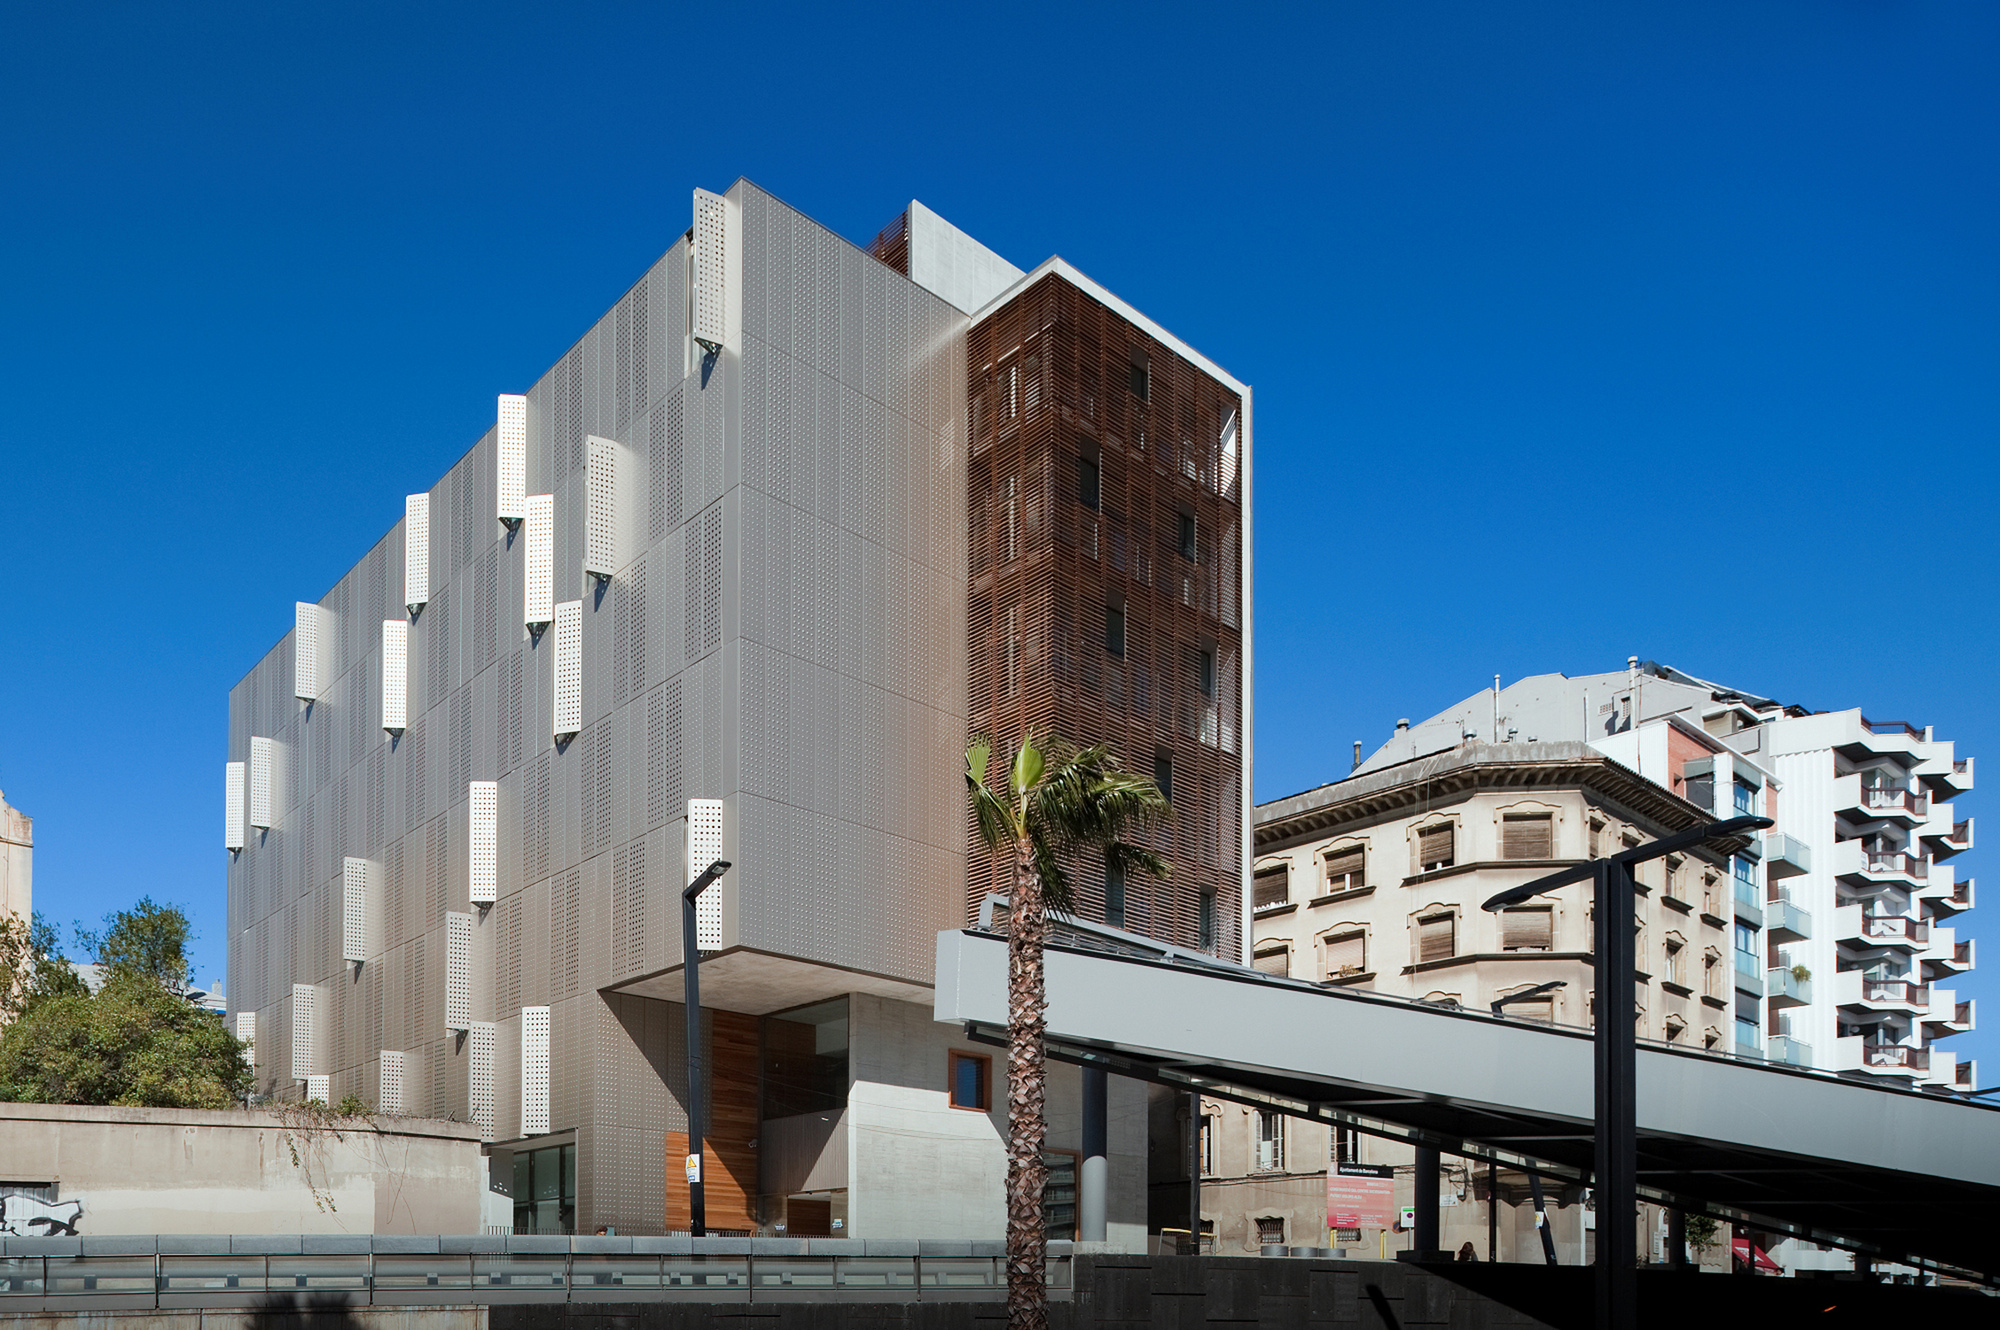 Putget Dolors Aleu Center for the Elderly / Pinearq, © FG+SG